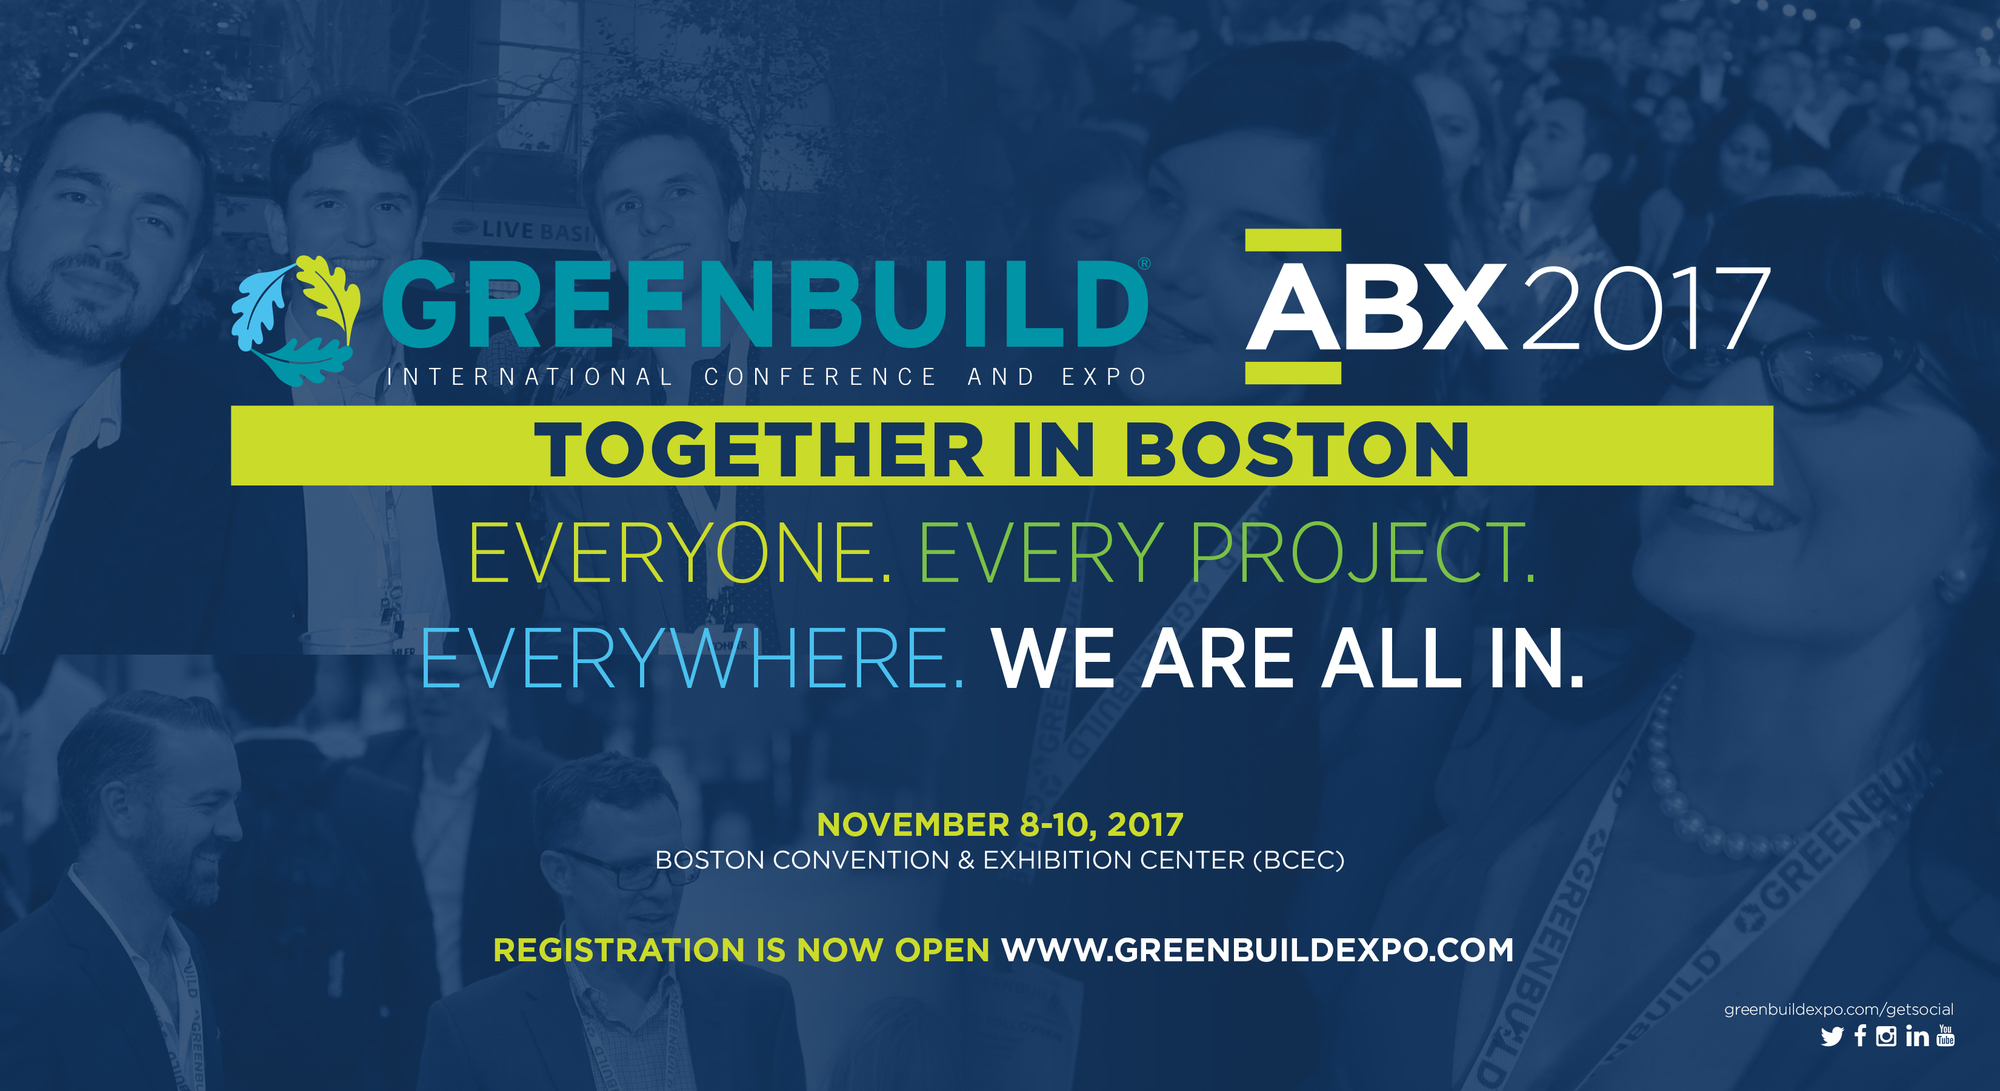 Green building tag archdaily greenbuild international conference and expo register today xflitez Images